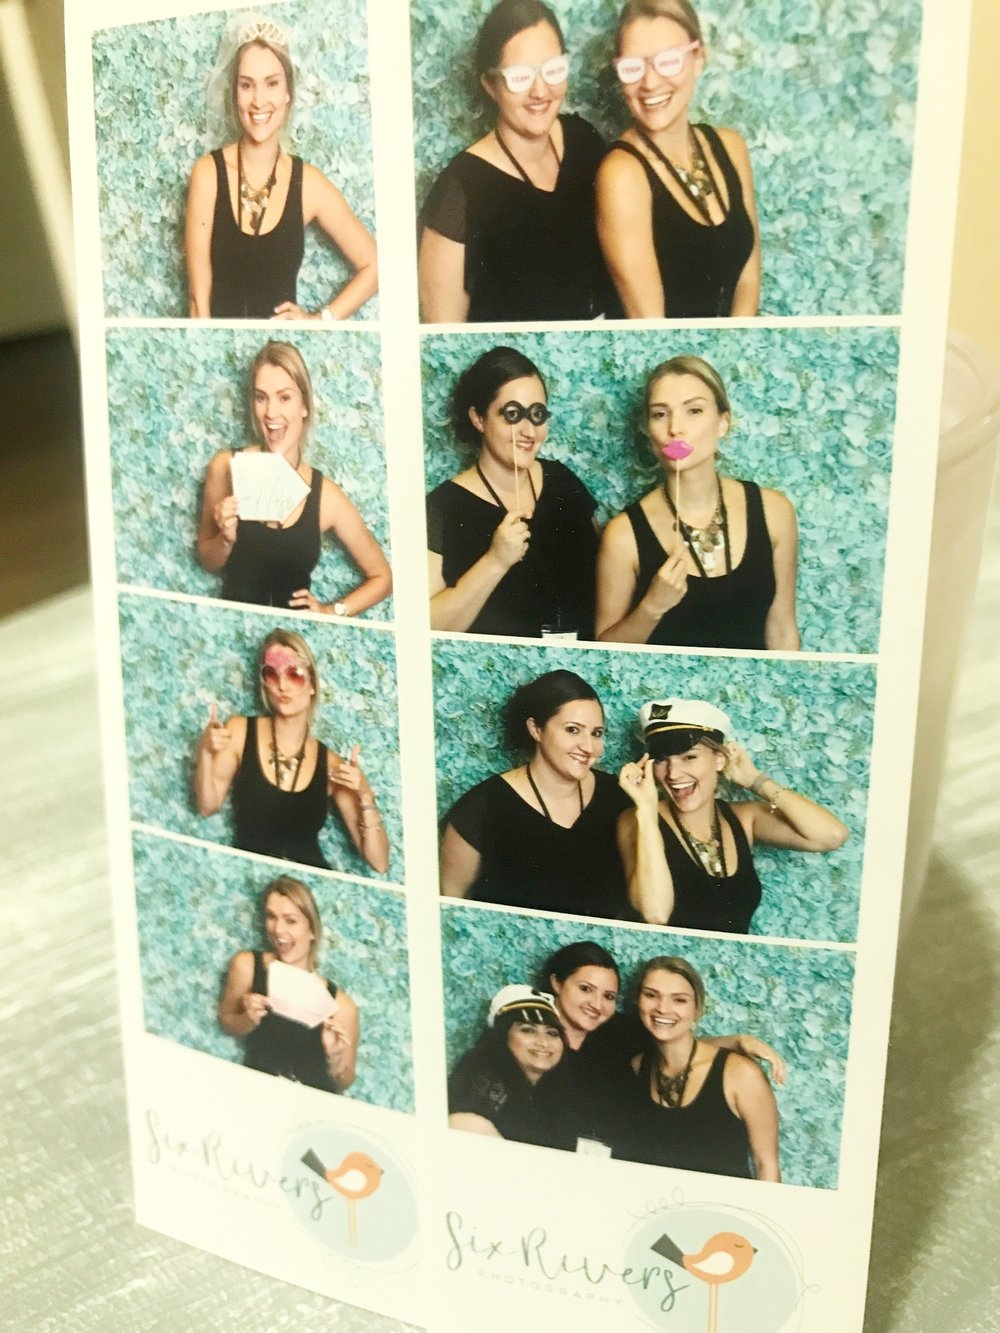 A little photobooth fun with Six Rivers Photography at one of the recent bridal shows!